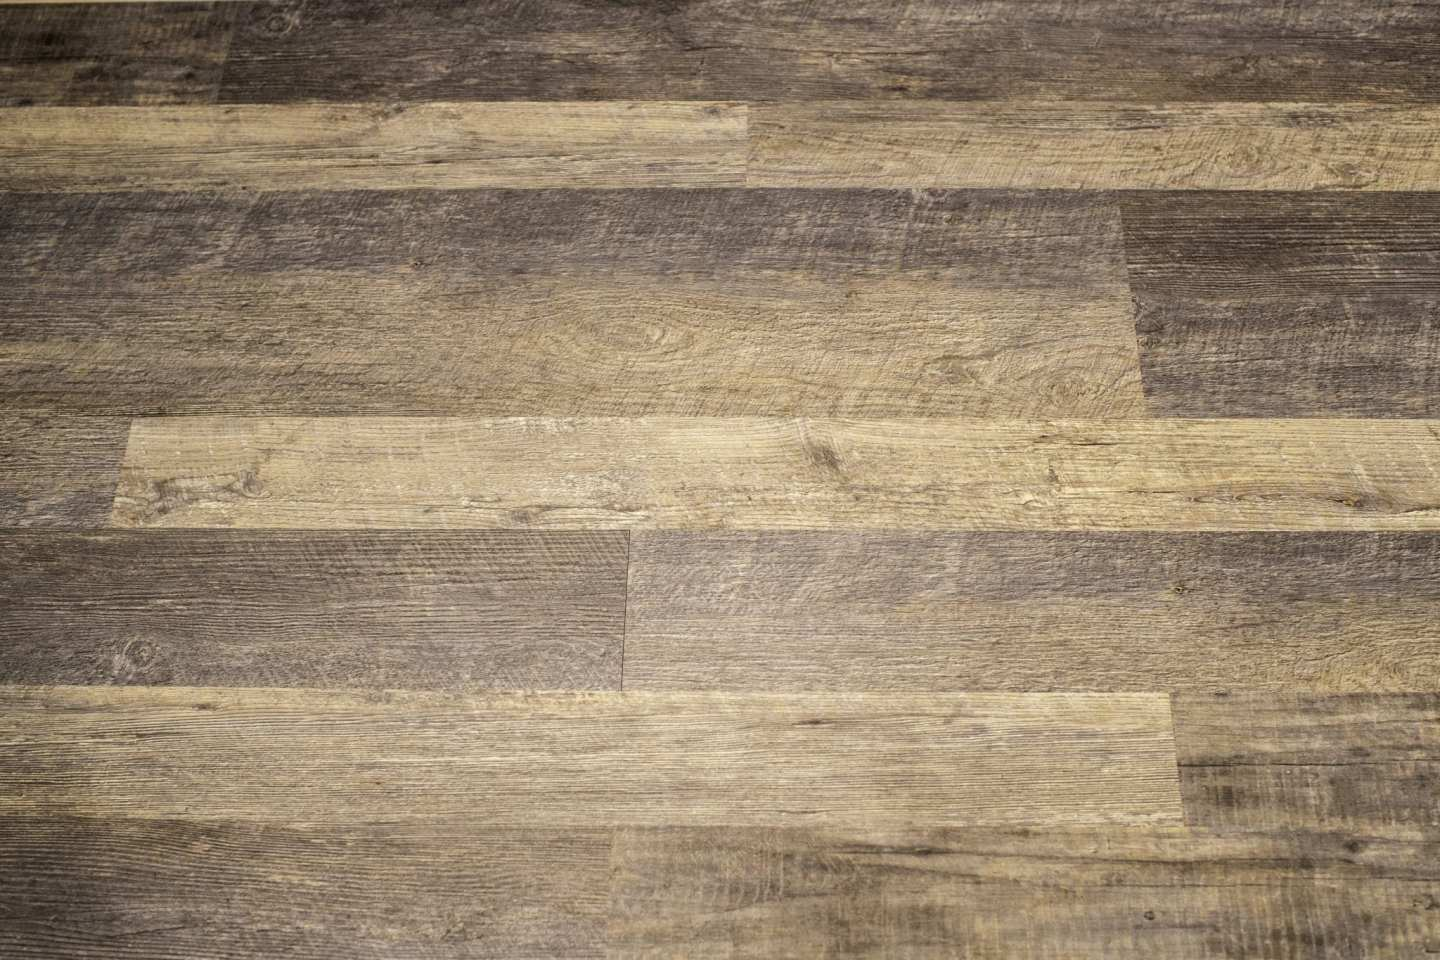 Installing vinyl flooring that looks like hardwood. Tips and tricks to do it right.